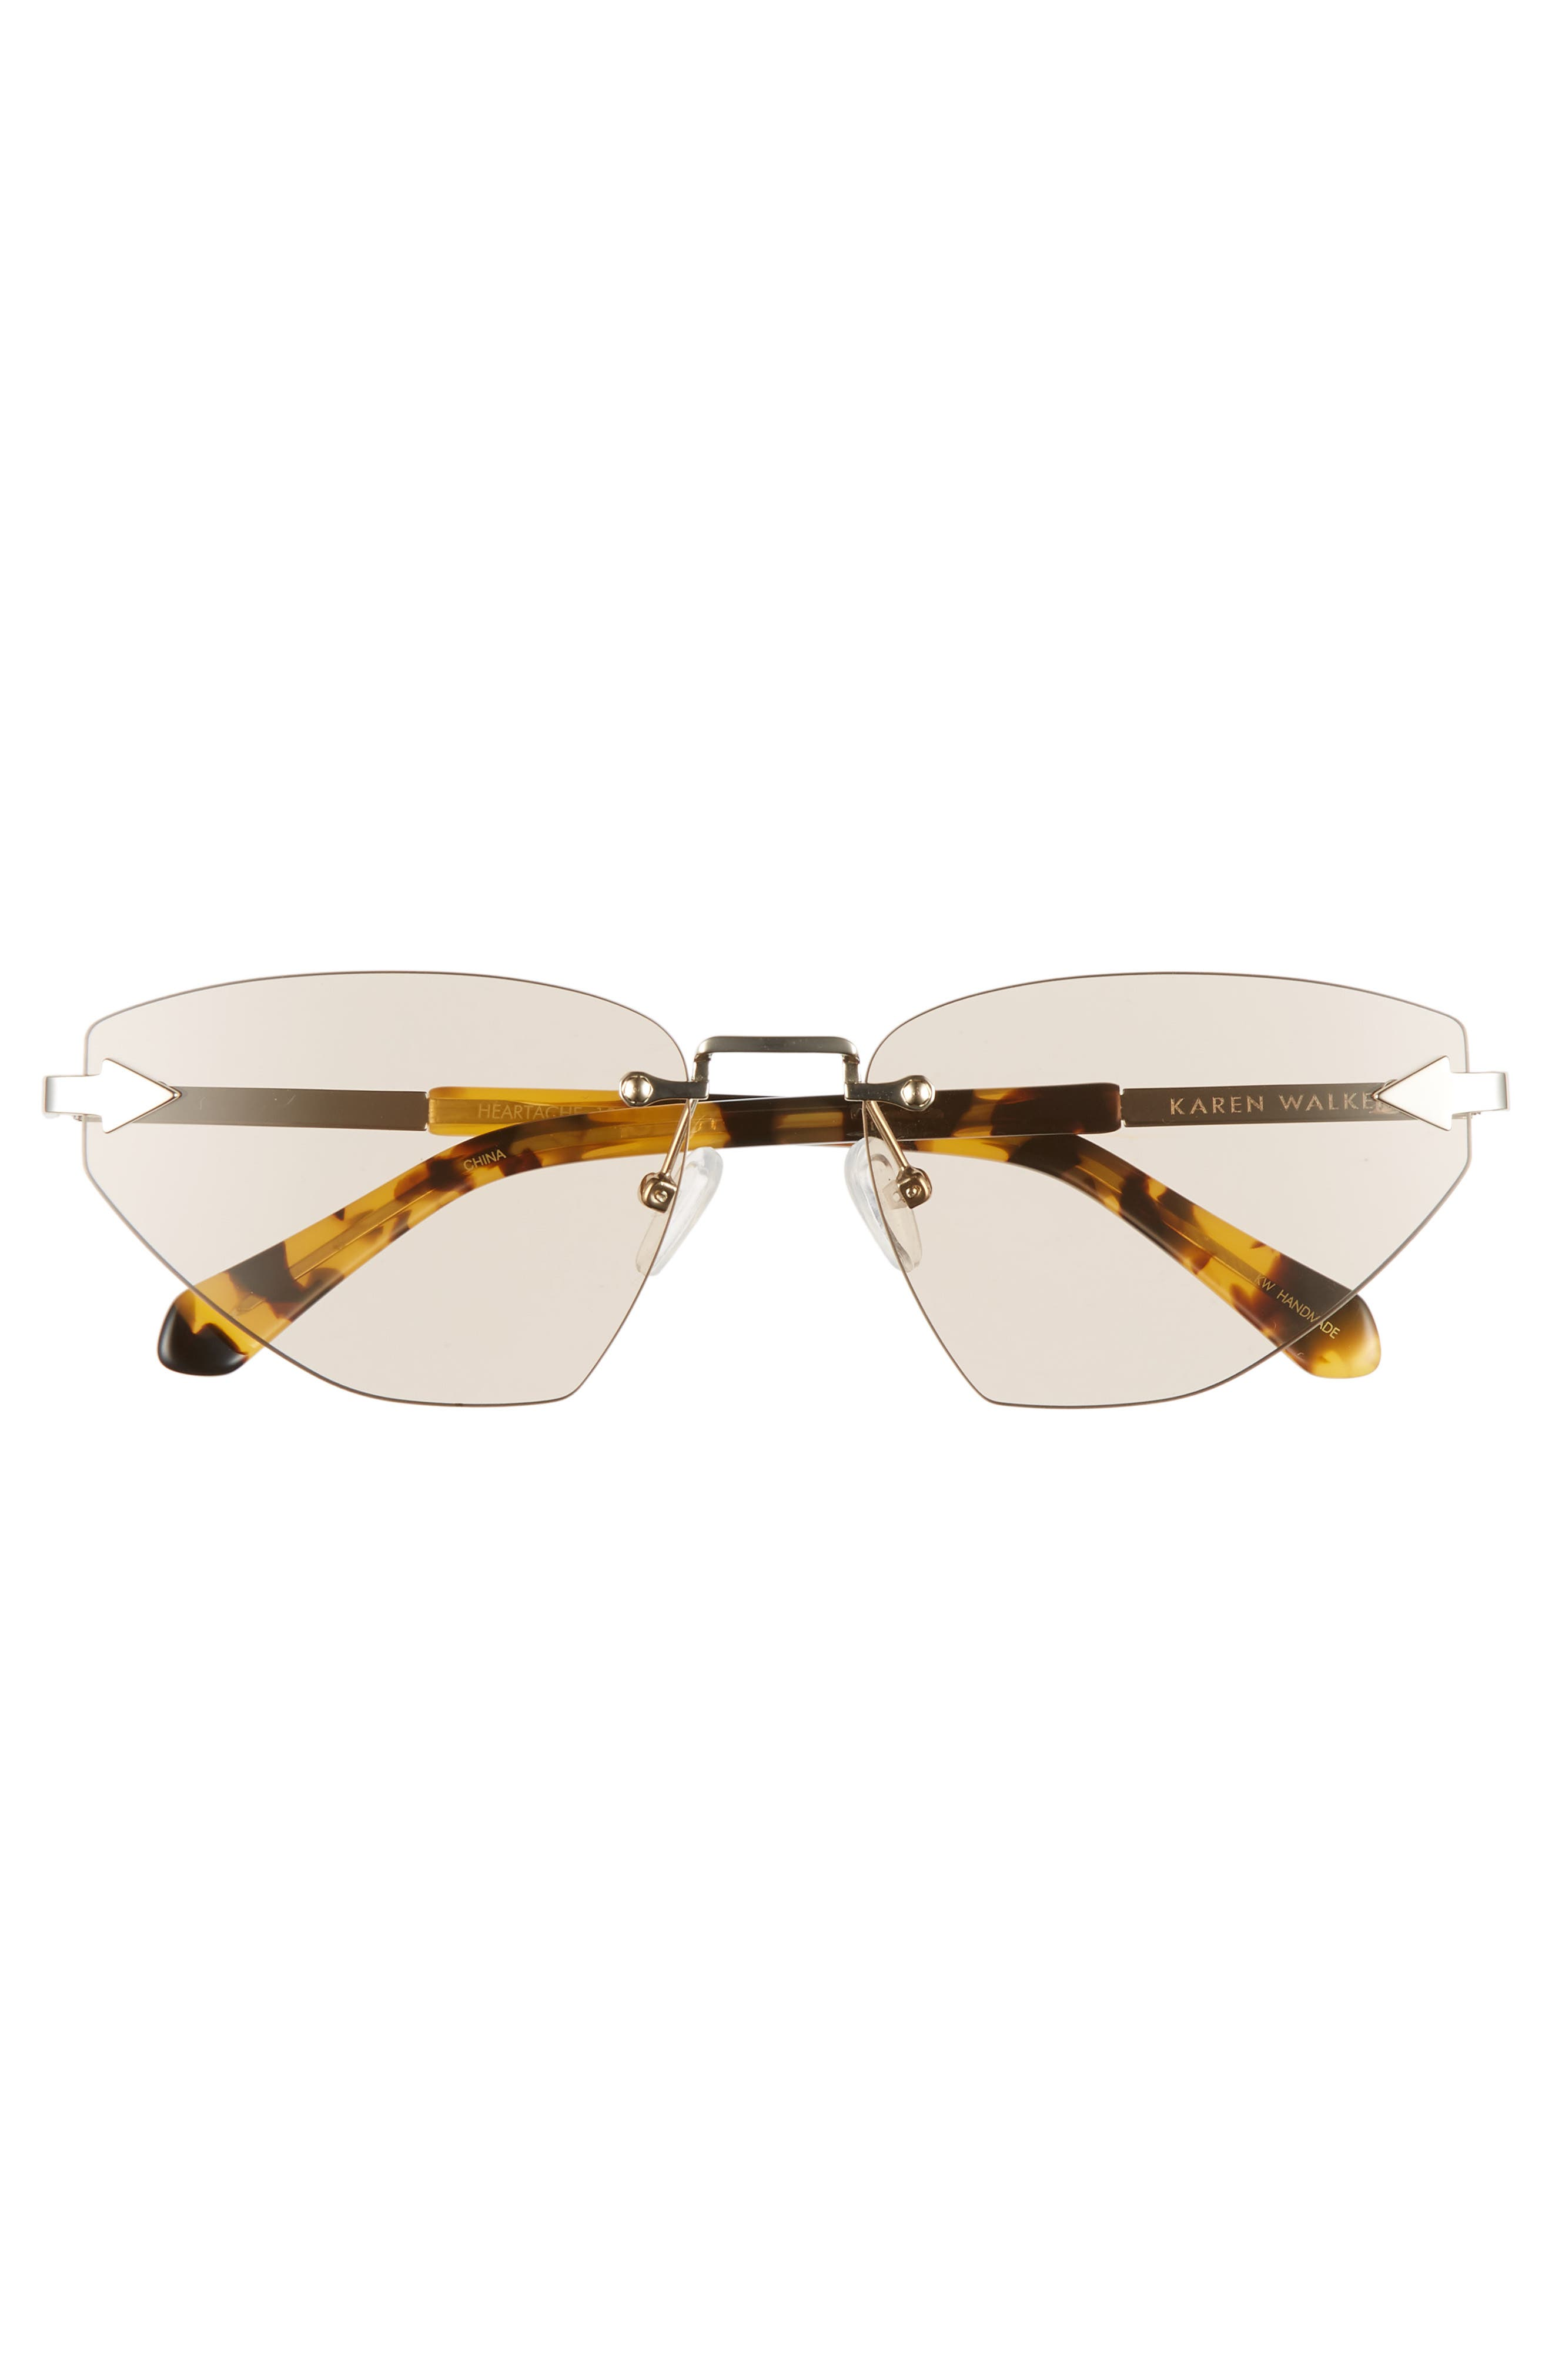 Heartache 60mm Cat Eye Sunglasses,                             Alternate thumbnail 3, color,                             GOLD/ TORTOISE